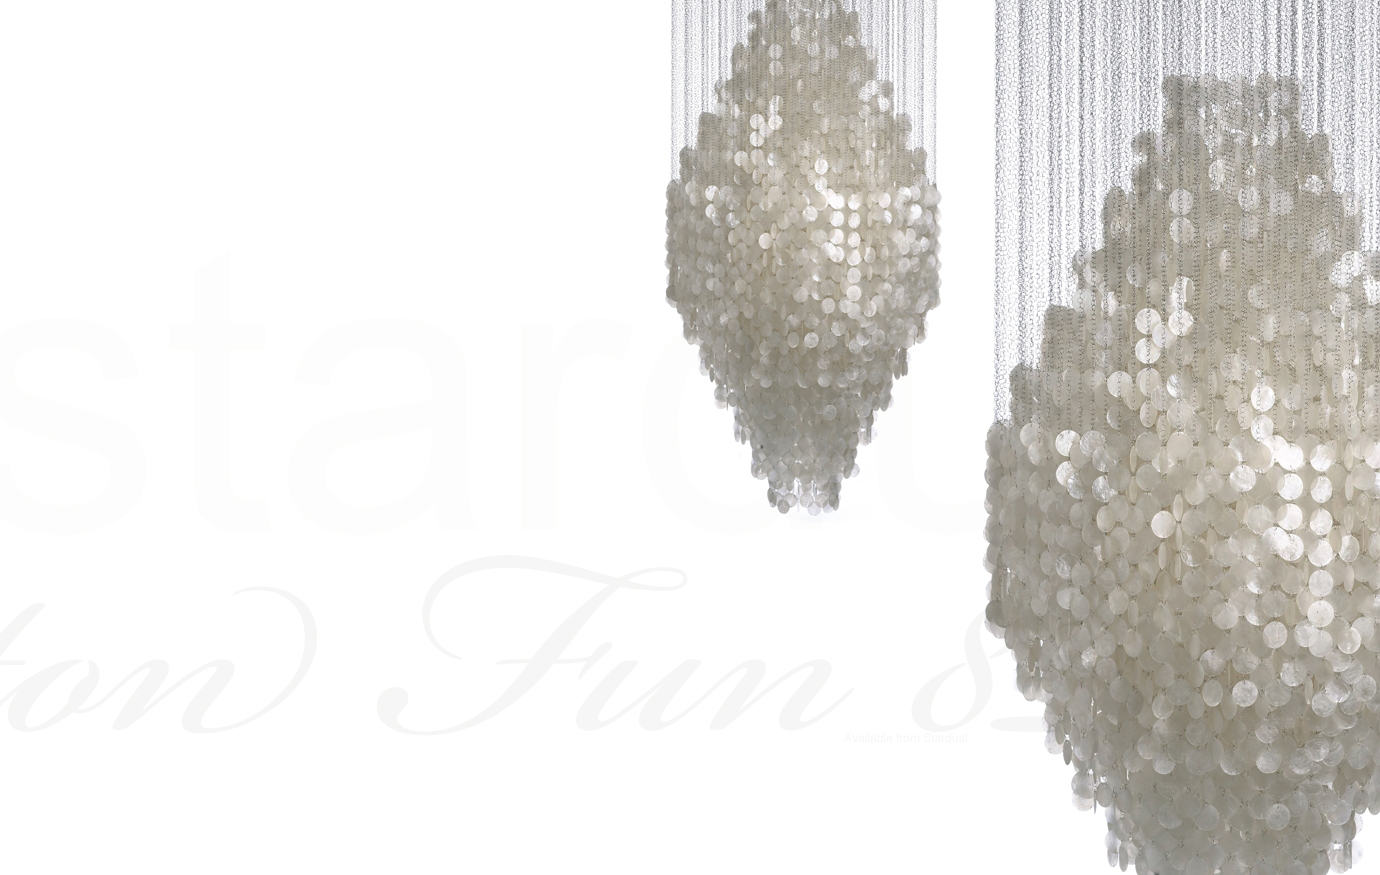 Large modern chandeliers 8 dm extra large chandelier from verner large modern chandeliers 8 dm extra large chandelier from verner panton with 1000s of capiz shells white arubaitofo Image collections